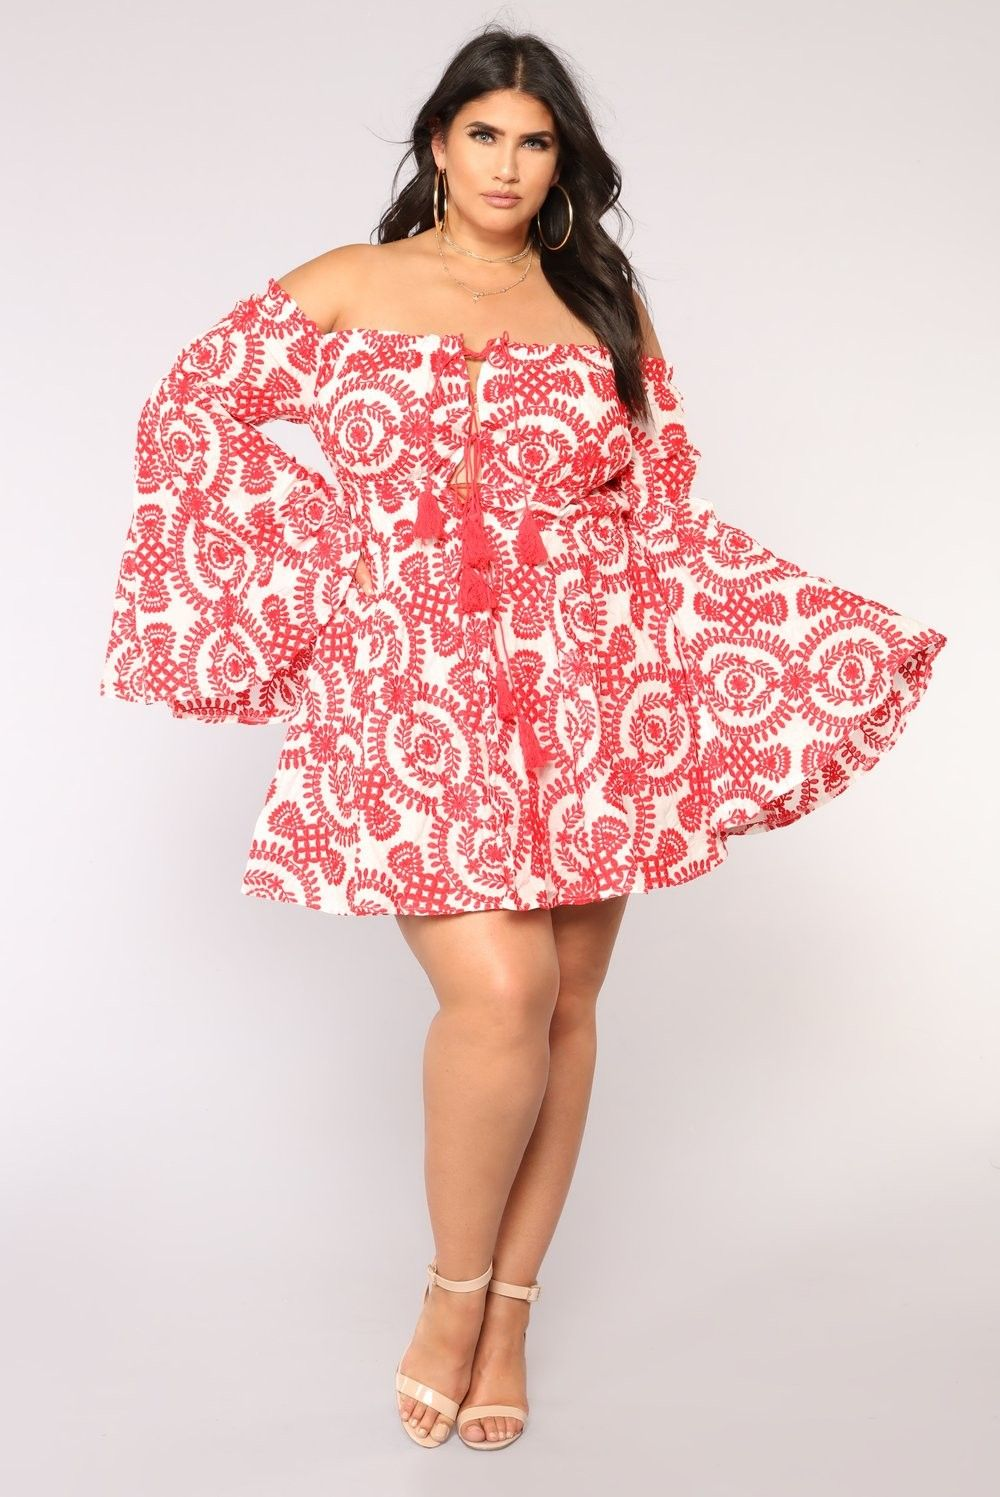 c5cfb2aa430 Plus Size Sweet Water Embroidered Dress - White Red  69.99  ootd ...